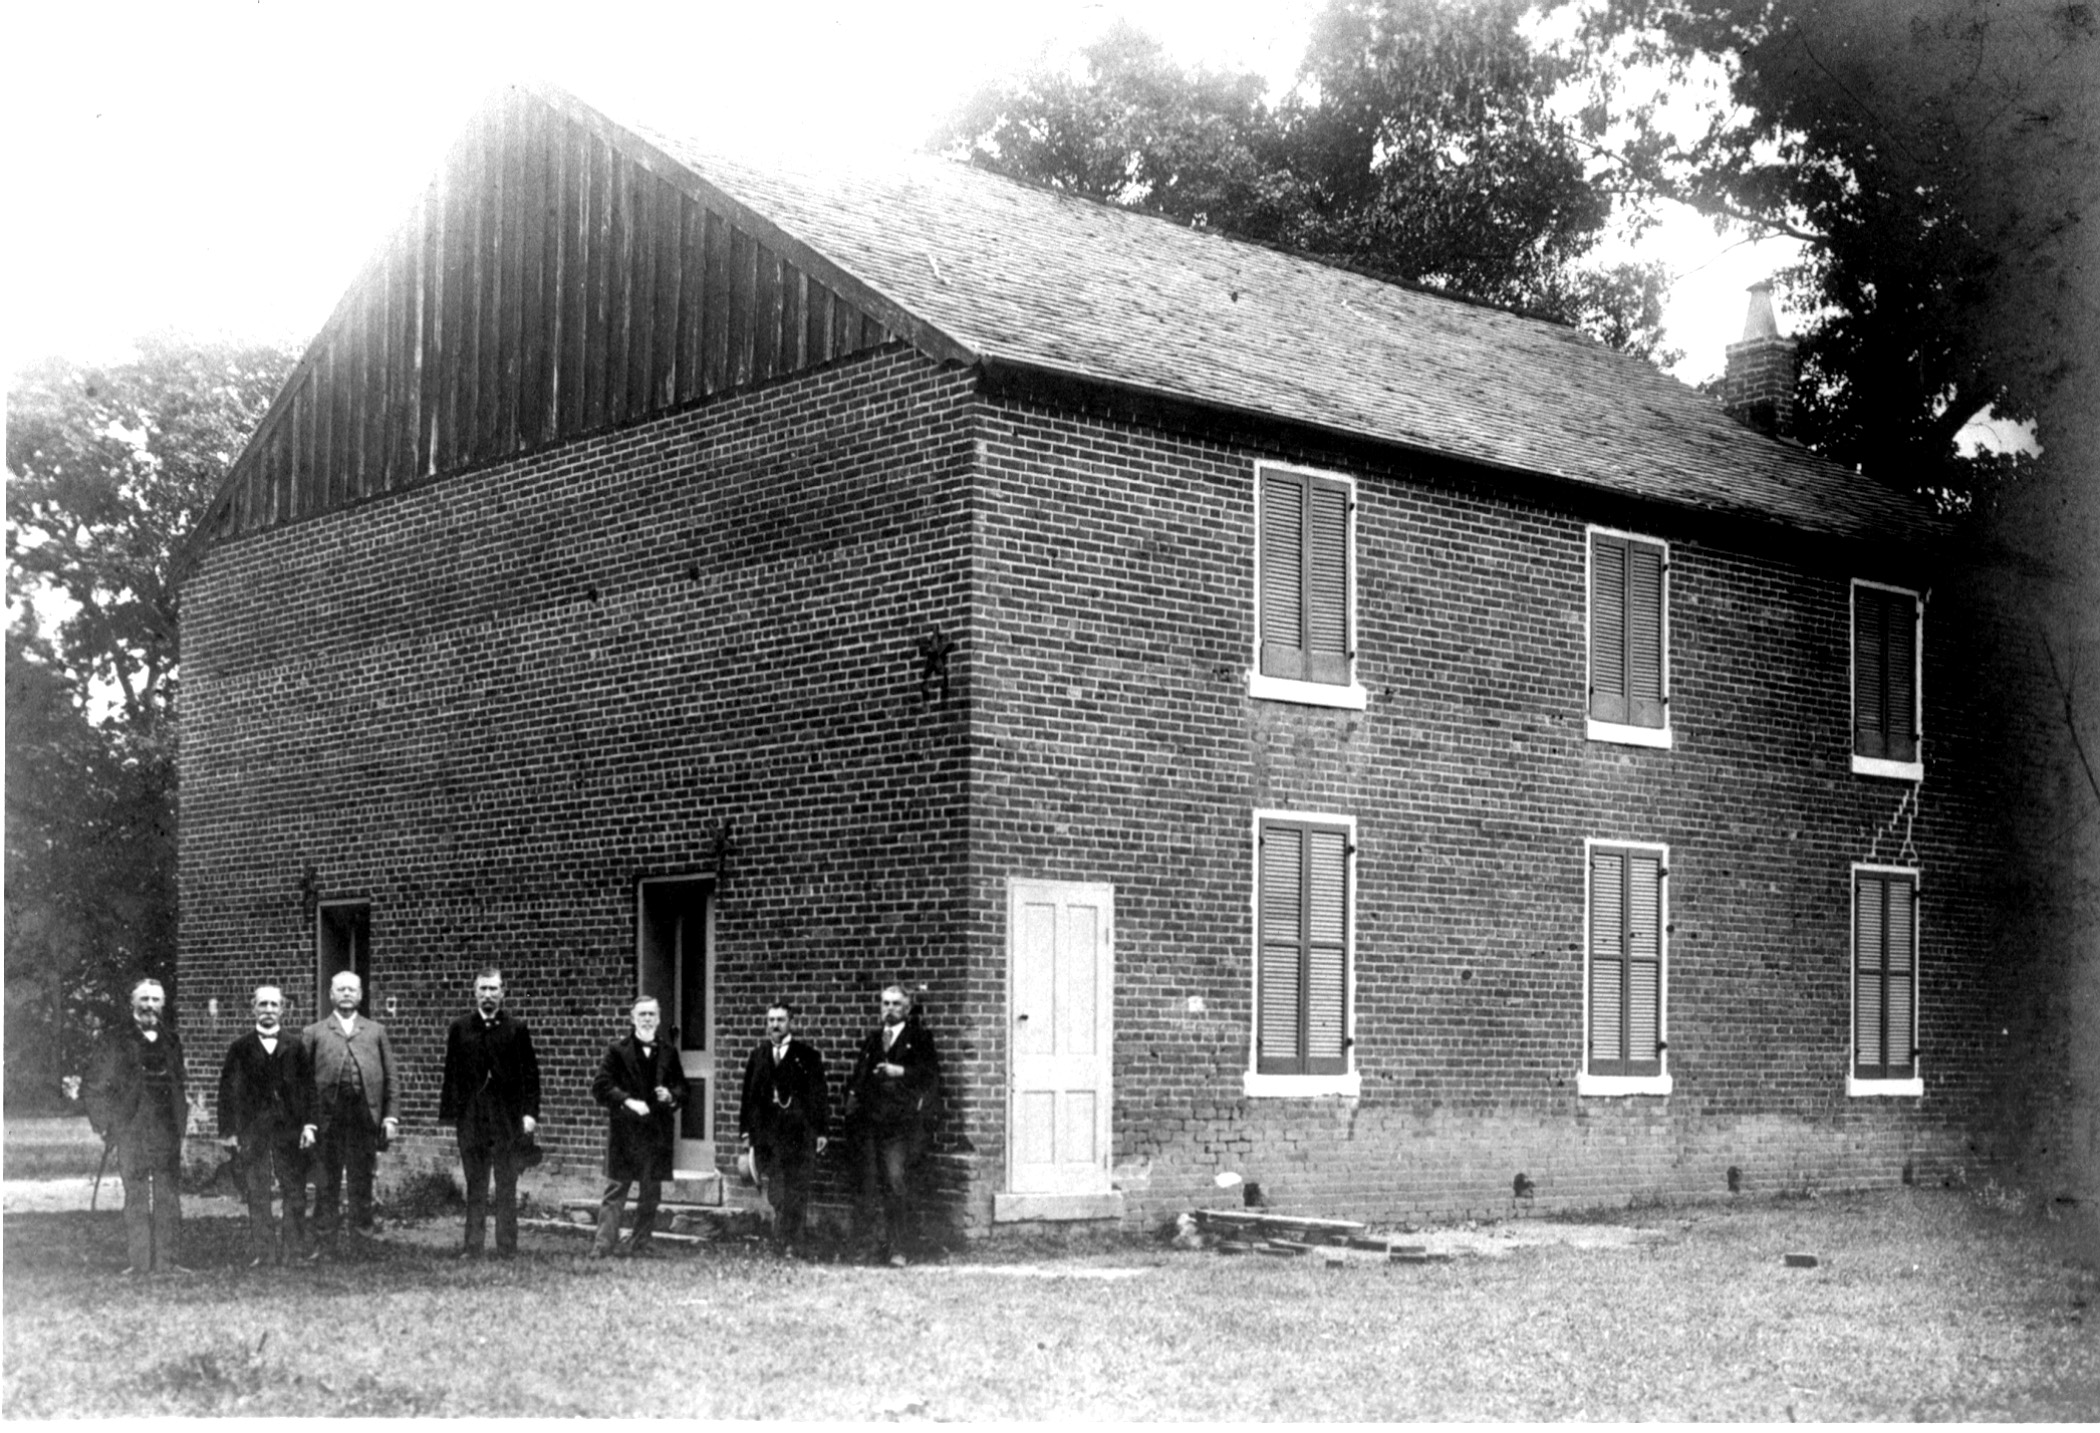 Veterans at Salem Church in 1900 (National Park Service via Wikimedia Commons)